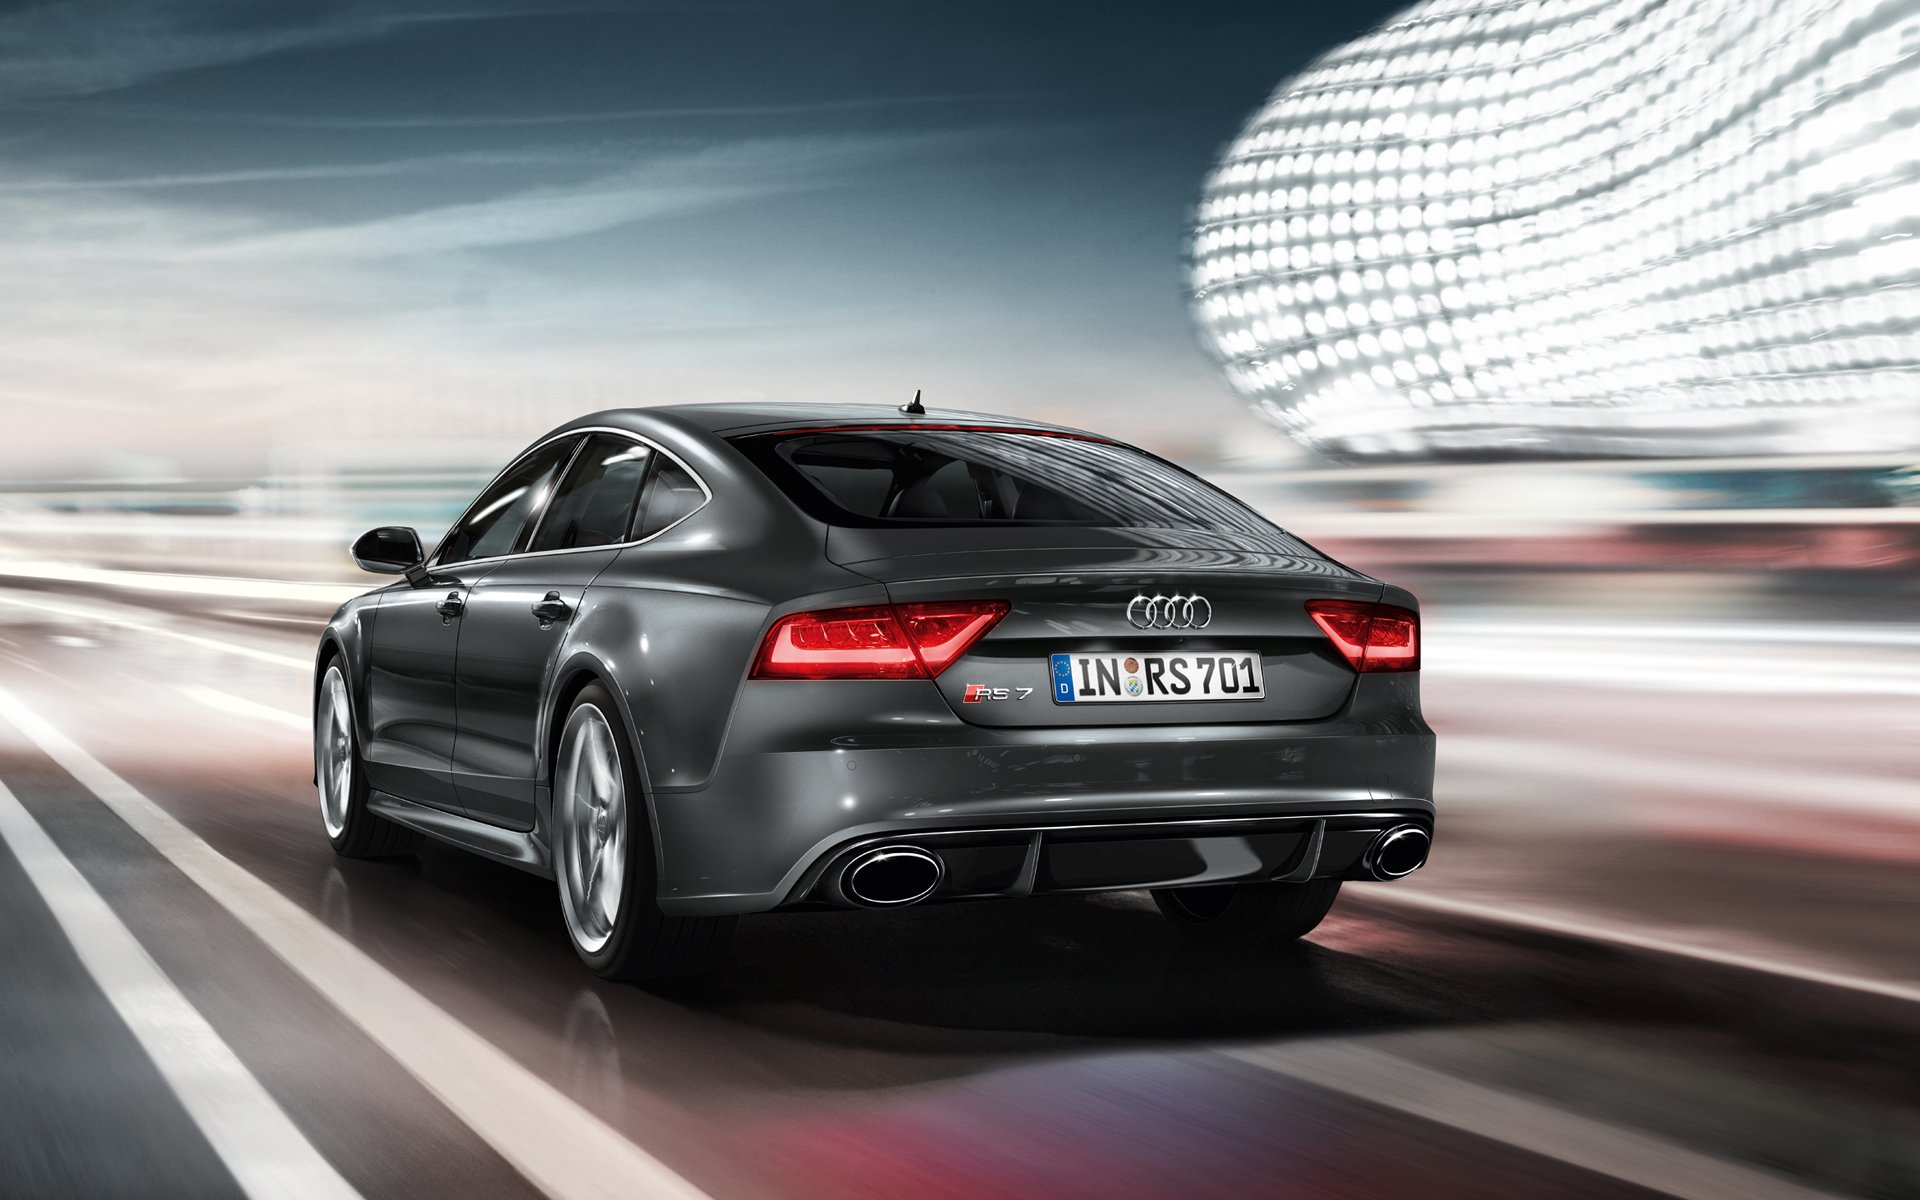 Free Download Audi Rs7 Car Hd Wallpapers 1920x1200 For Your Desktop Mobile Tablet Explore 44 Audi Rs7 Wallpaper Audi Rs7 Wallpaper Audi Audi Full